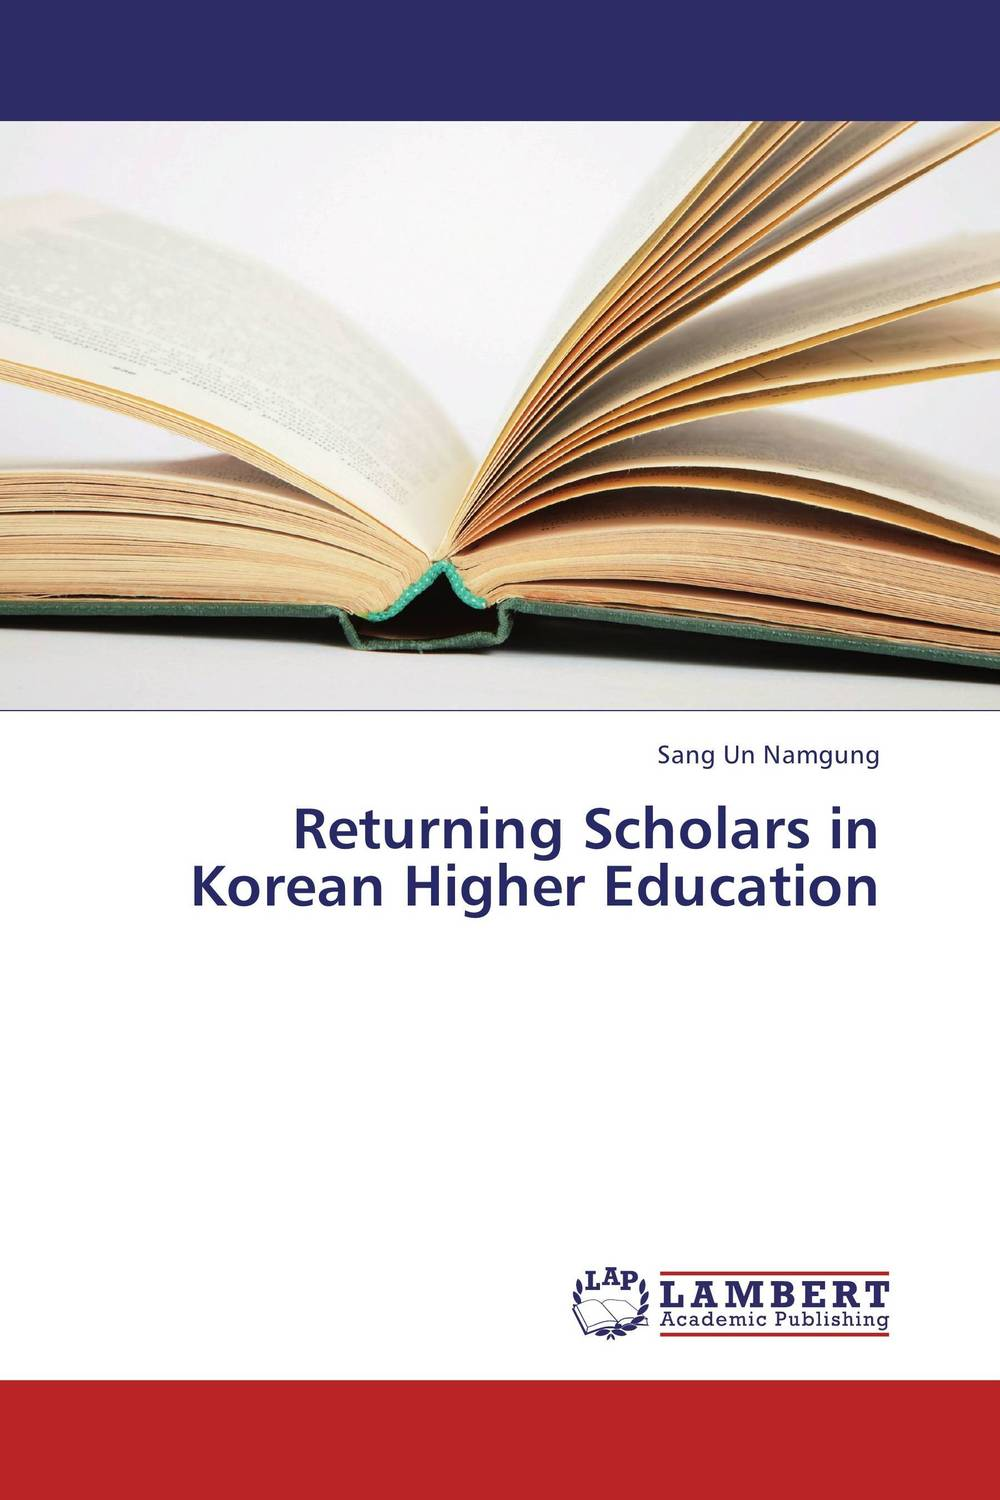 Returning Scholars in Korean Higher Education evgeniy gorbachev returning to earth research